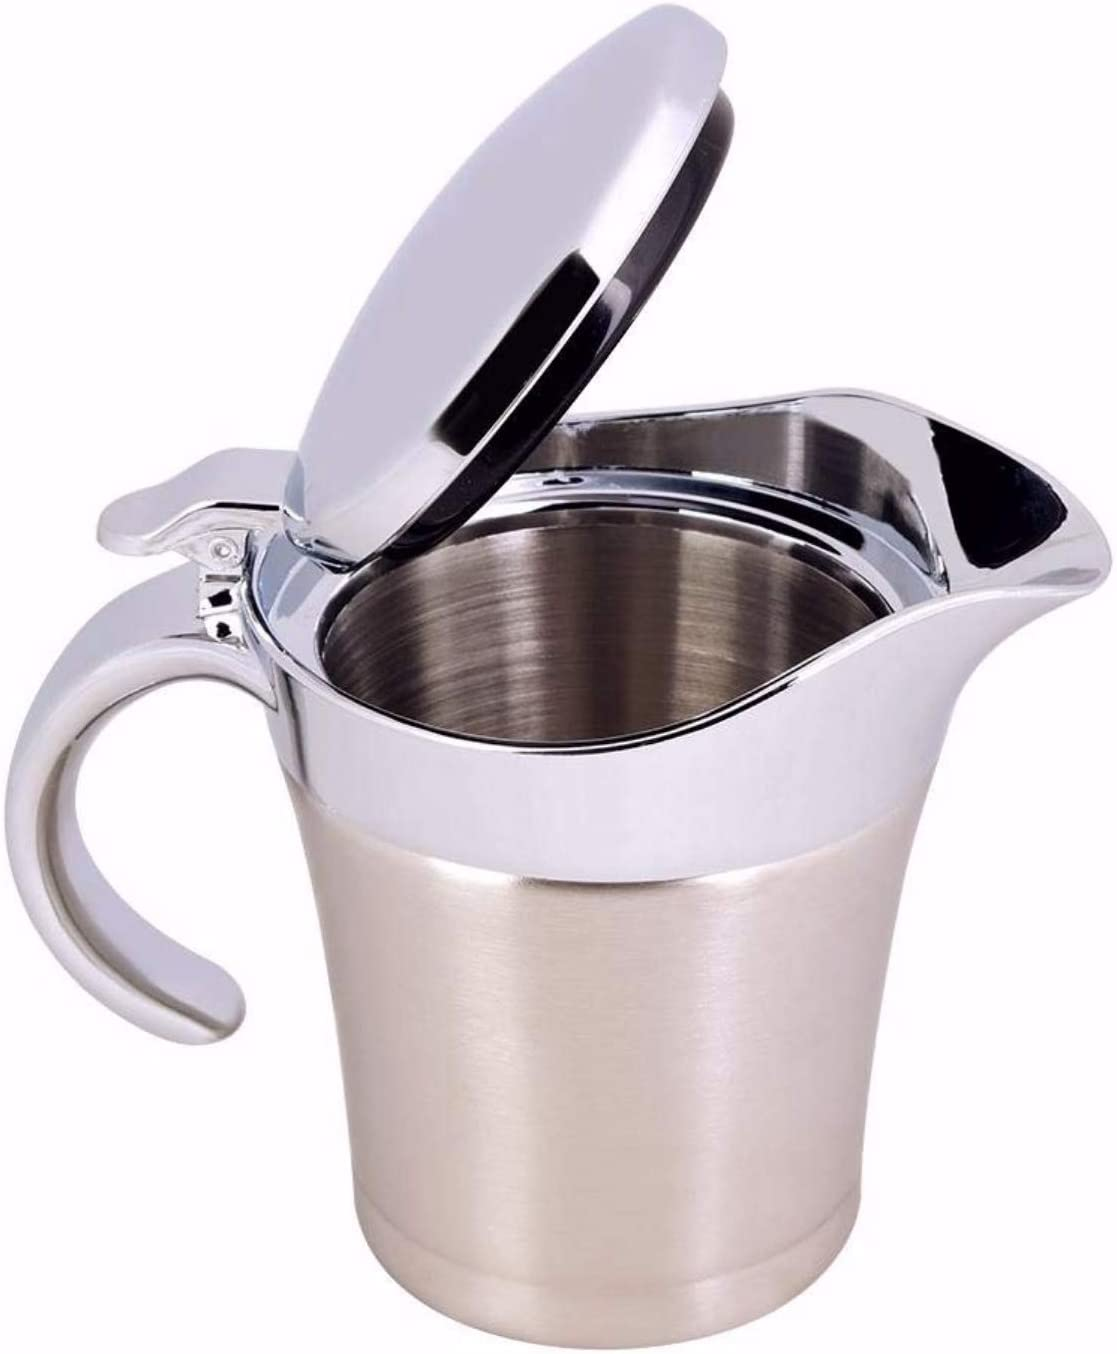 304 Stainless Steel Thermal Insulated Double Wall Sauce Gravy Boat Serveware Beverage Serveware Kitchen Pot Serving Jug (S450ml)